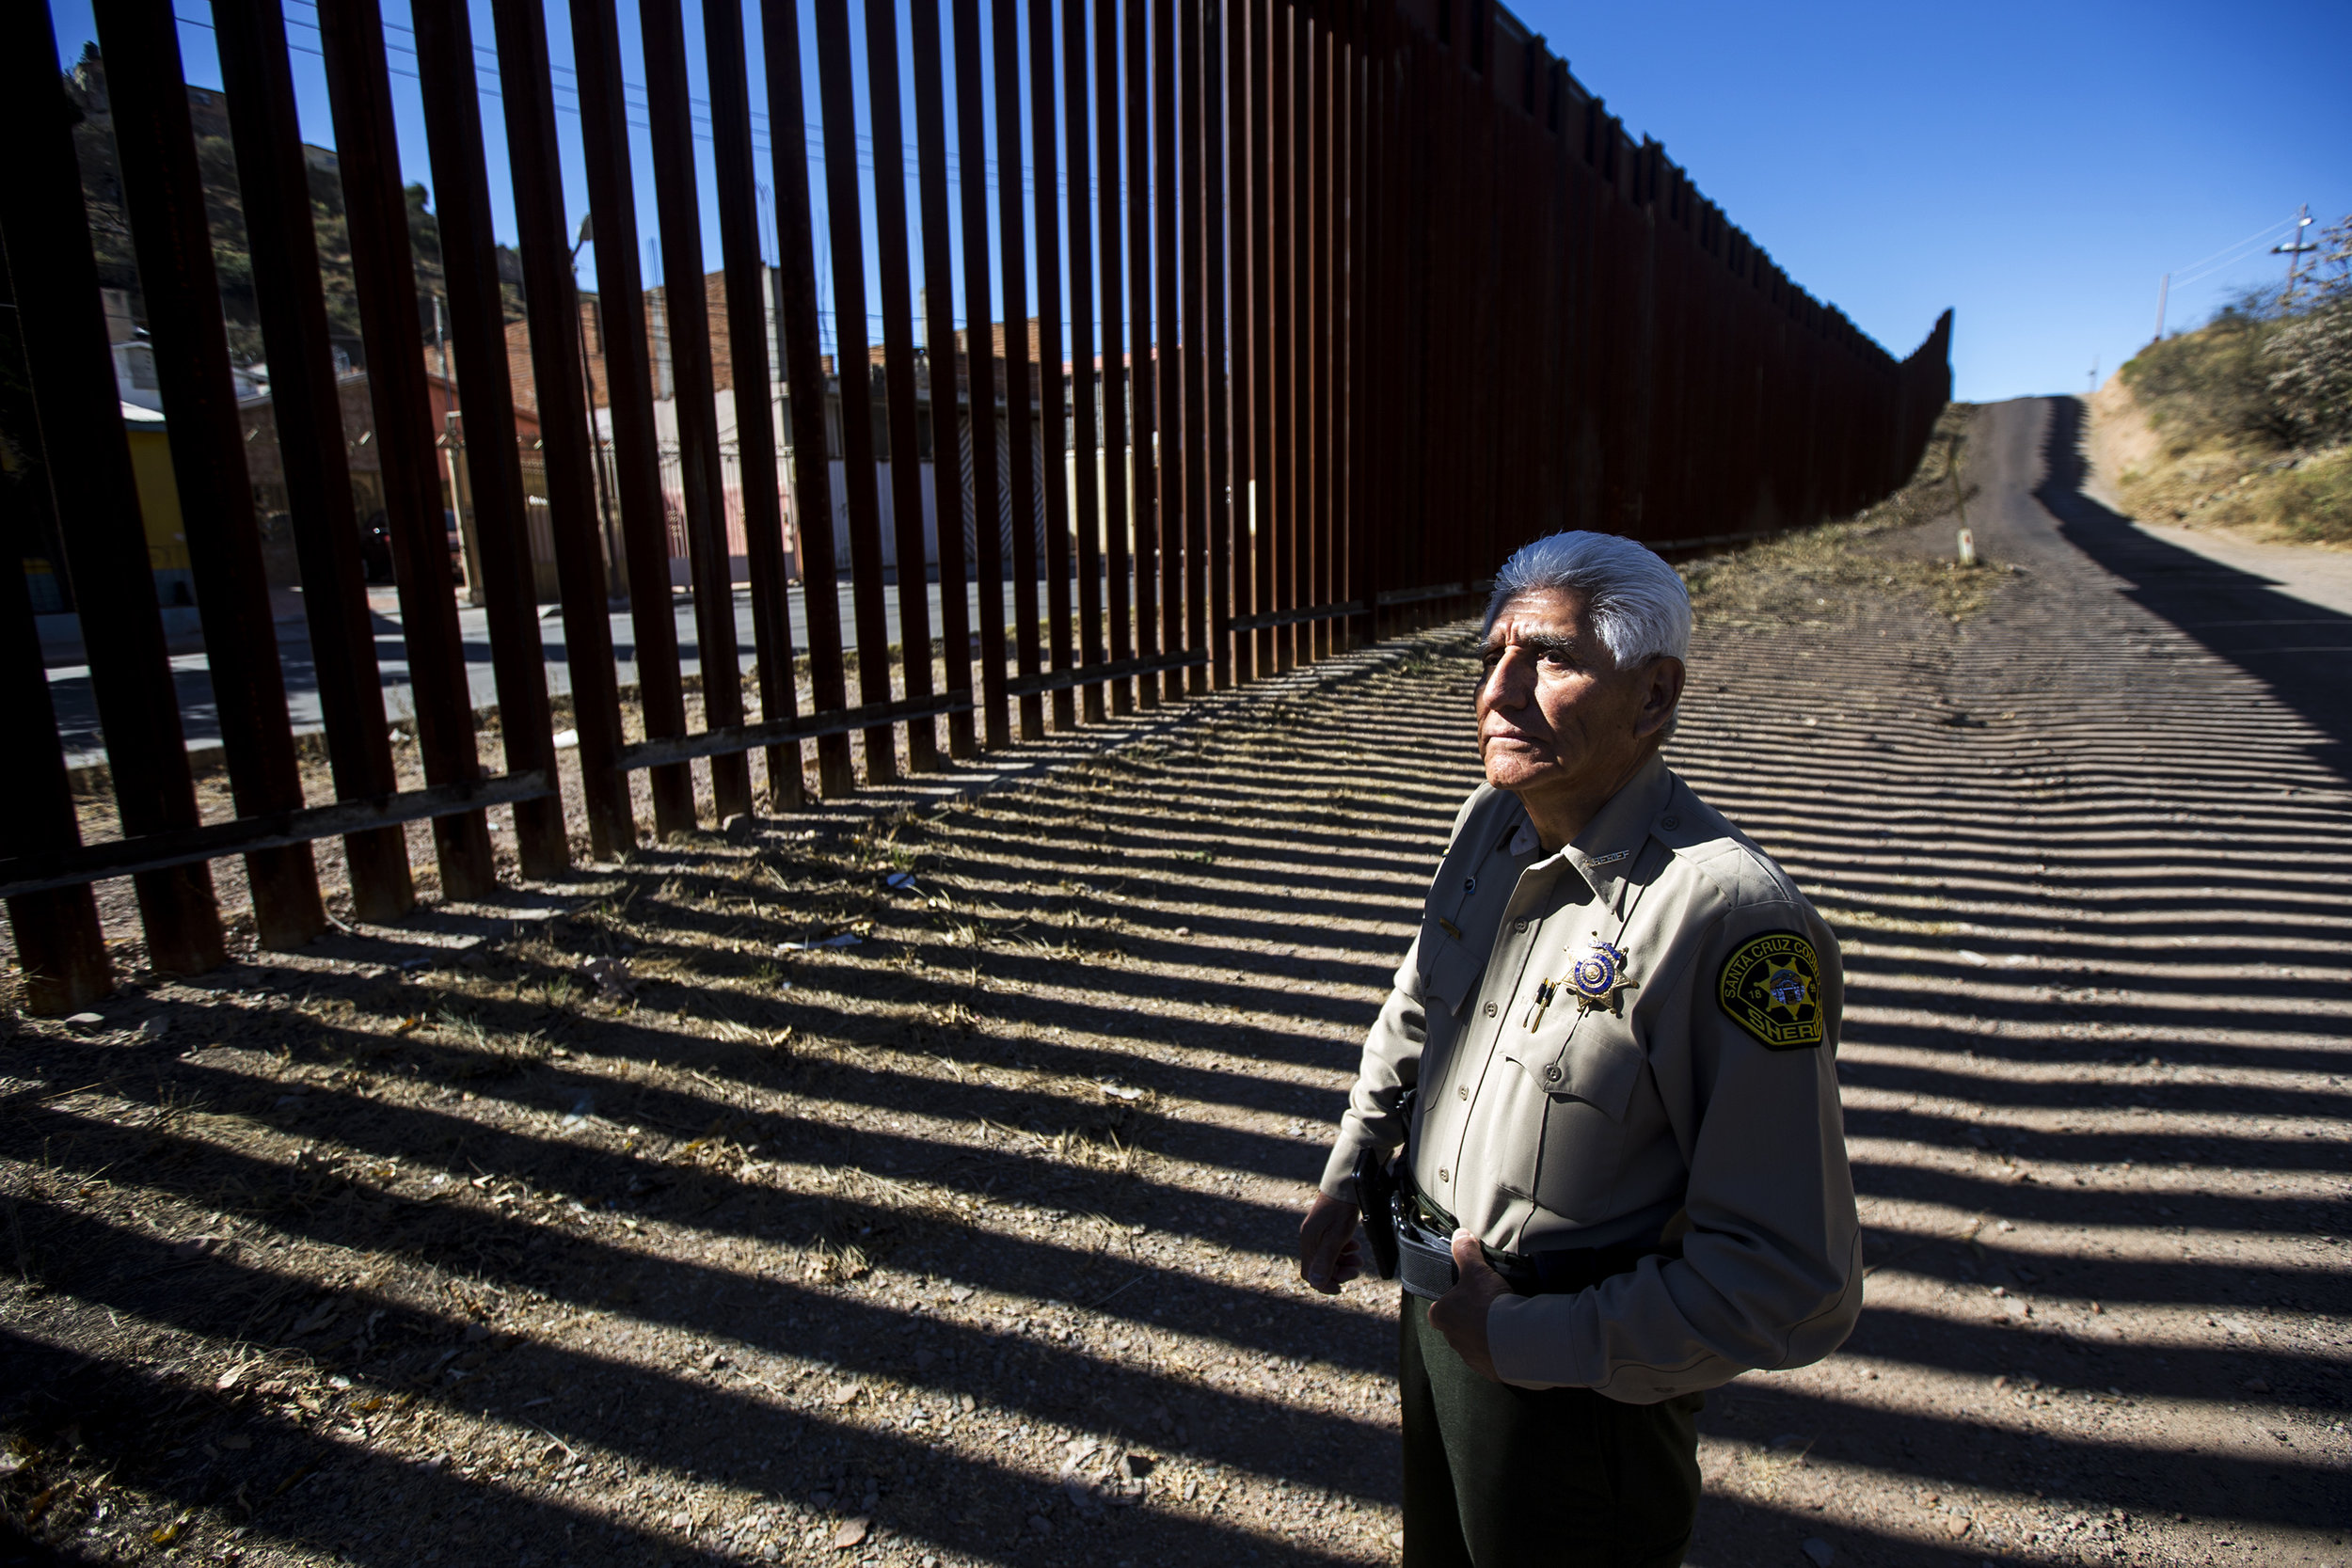 Santa Cruz County Sheriff Tony Estrada poses for a portrait at the United States border with Mexico in Nogales, Ariz.